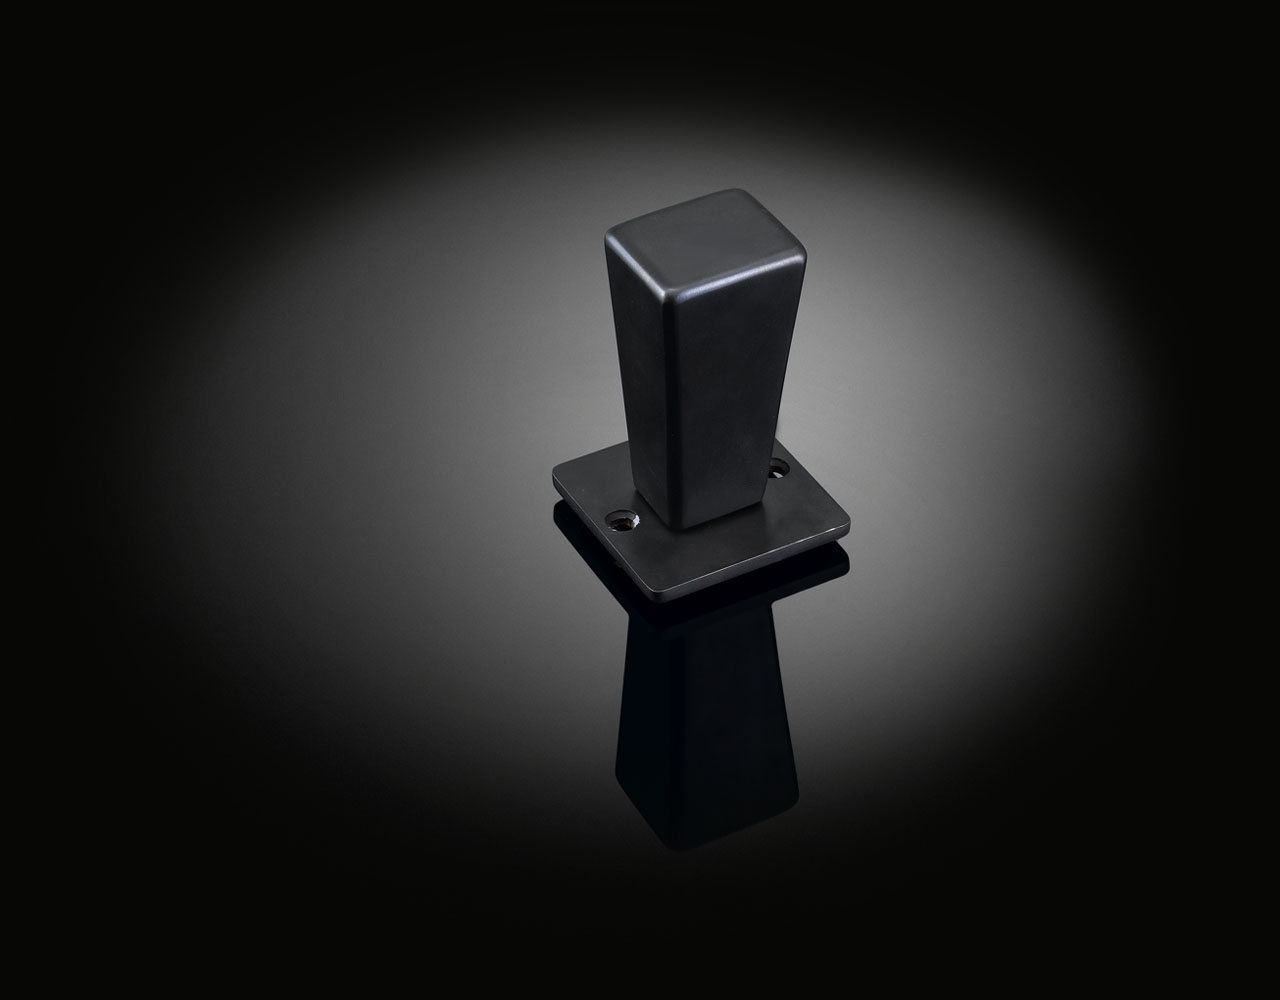 Bespoke door knob by David Adjaye in dark bronze finish from izé DAK03